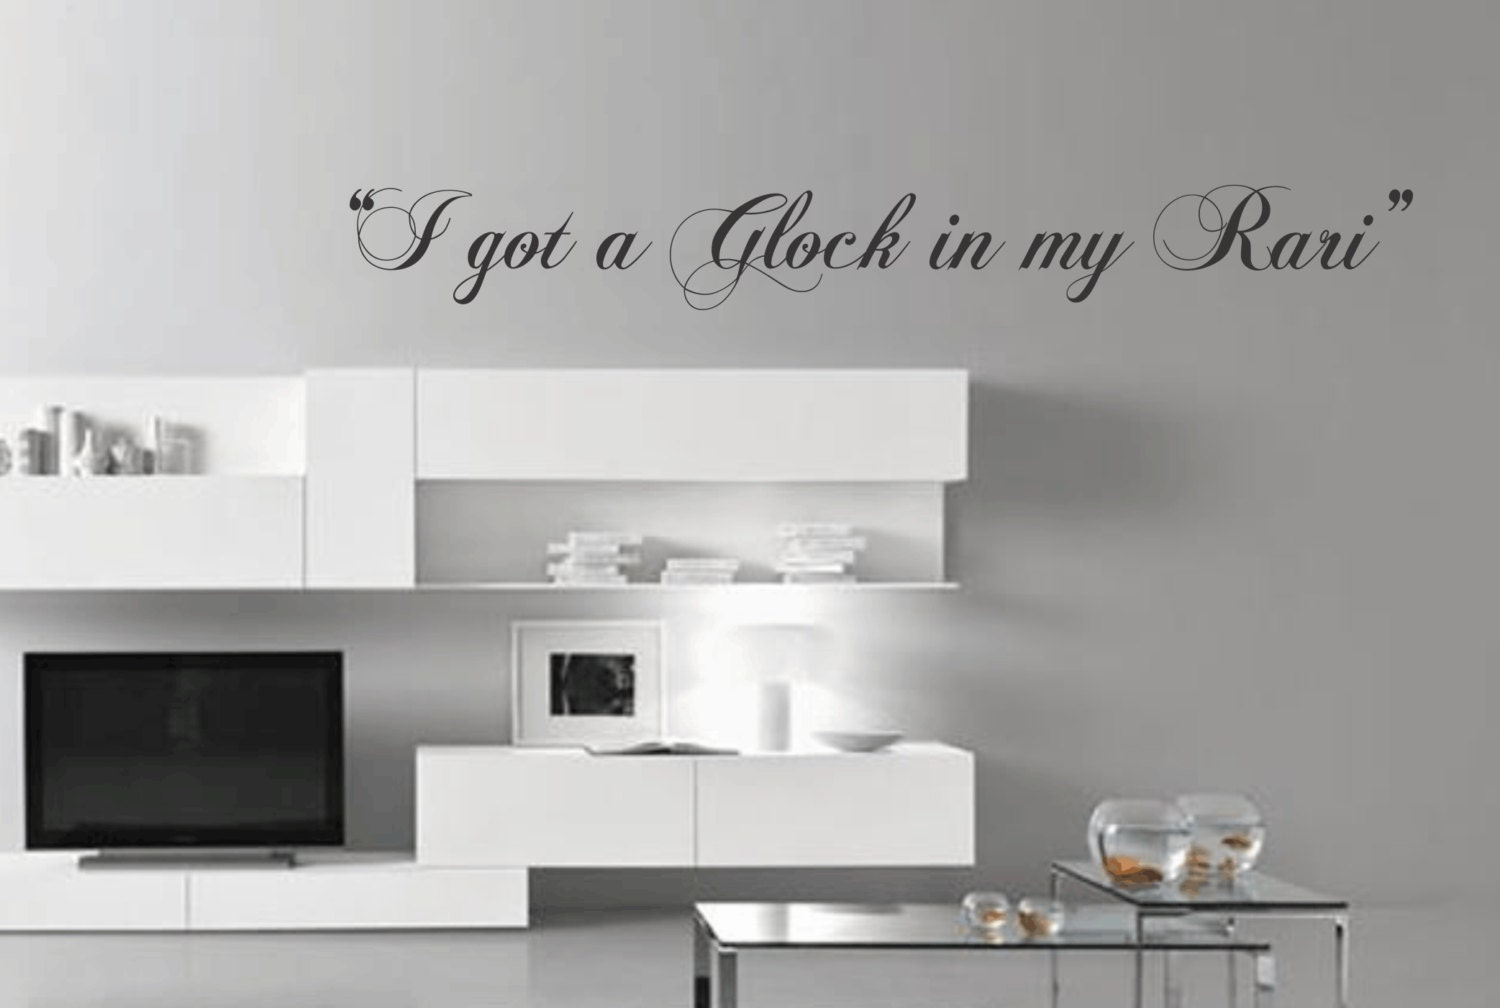 White apron lyrics